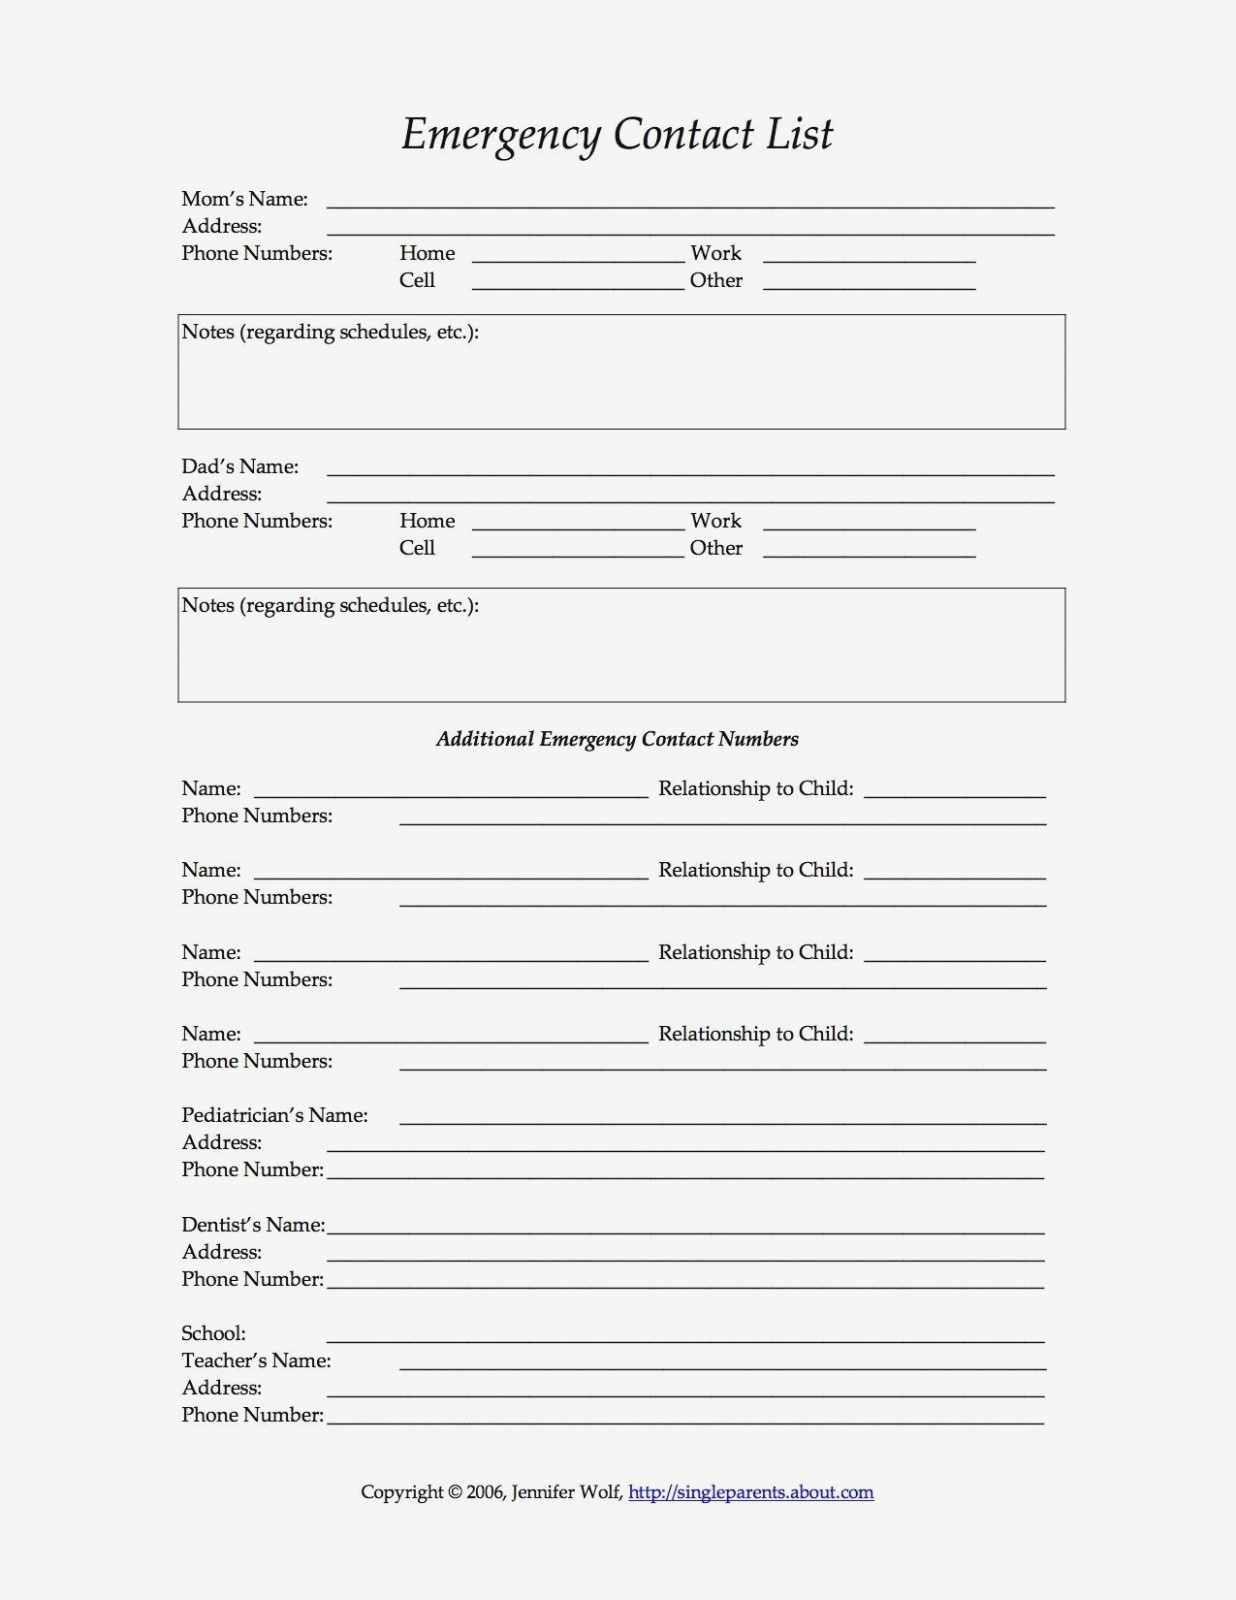 13 Free Printable Forms For Single Parents | Daycare: Recipes, Forms - Free Printable Daycare Forms For Parents